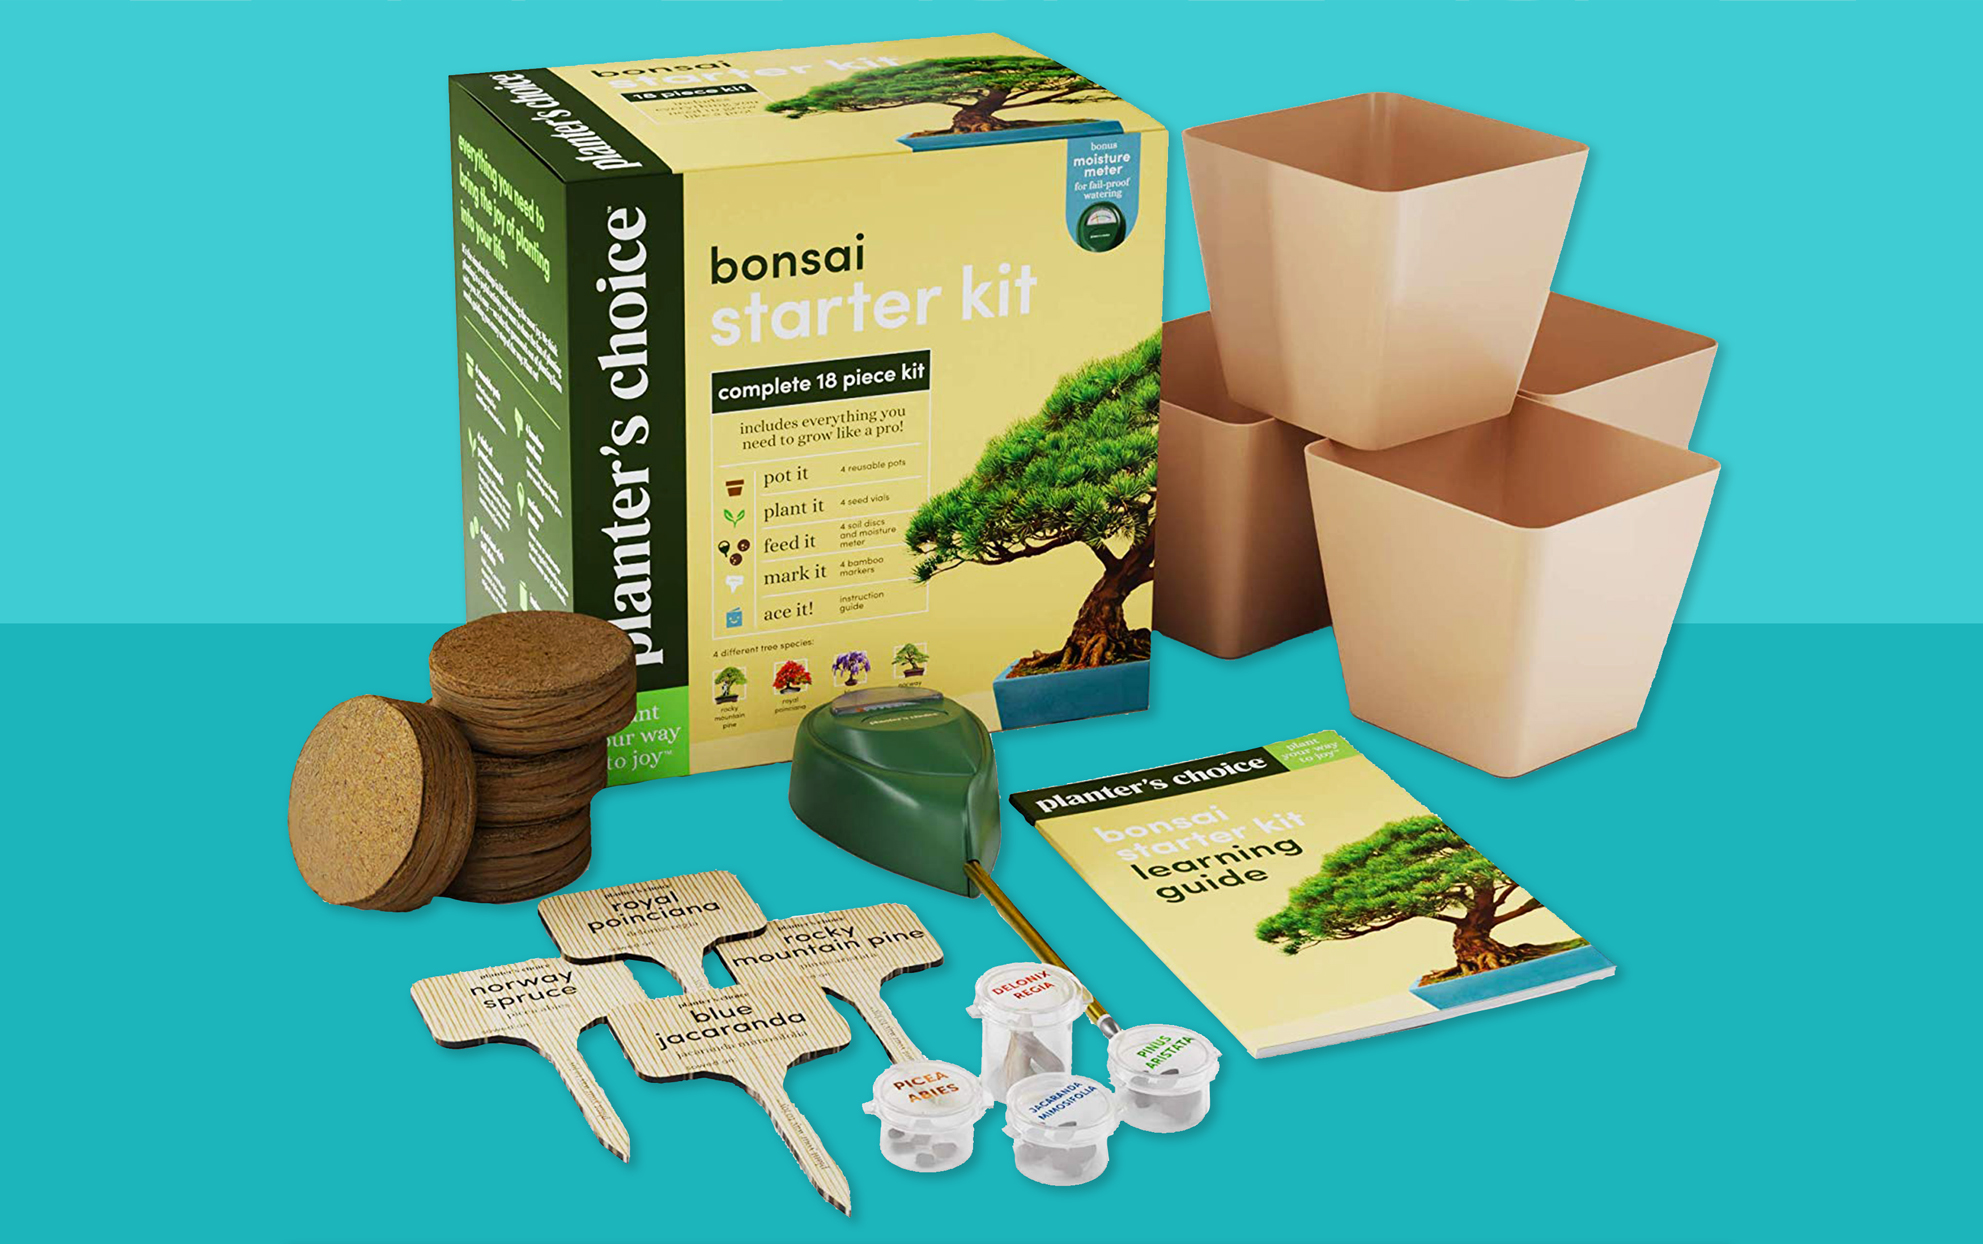 Bonsai Starter kit on a teal background